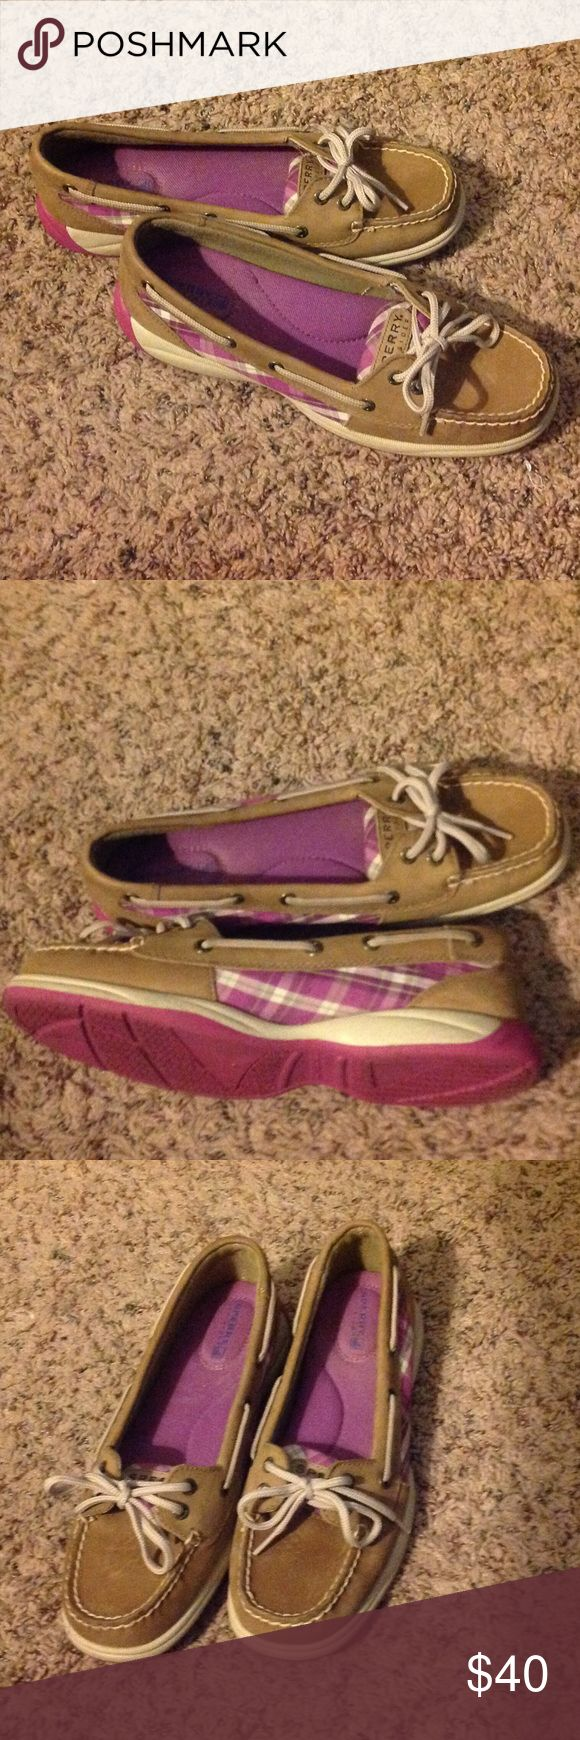 Women Sperry Angelfish shoes Good contain, leather is stainless with multicolored pattern. Sperry Shoes Flats & Loafers